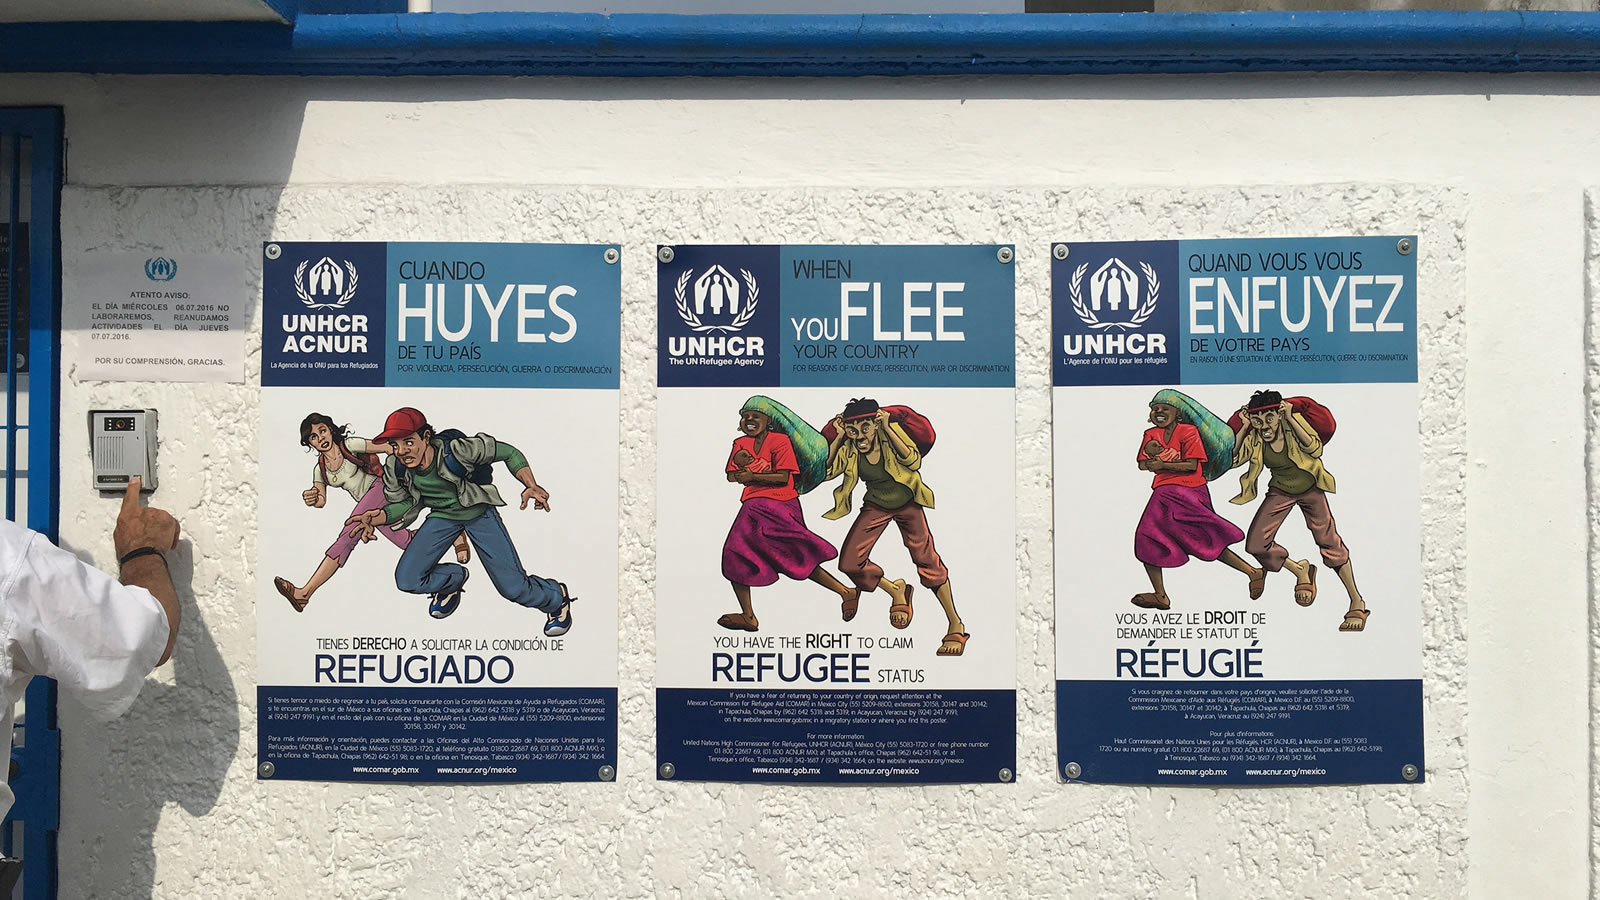 UNHCR Posters About the Right to Refugee Status